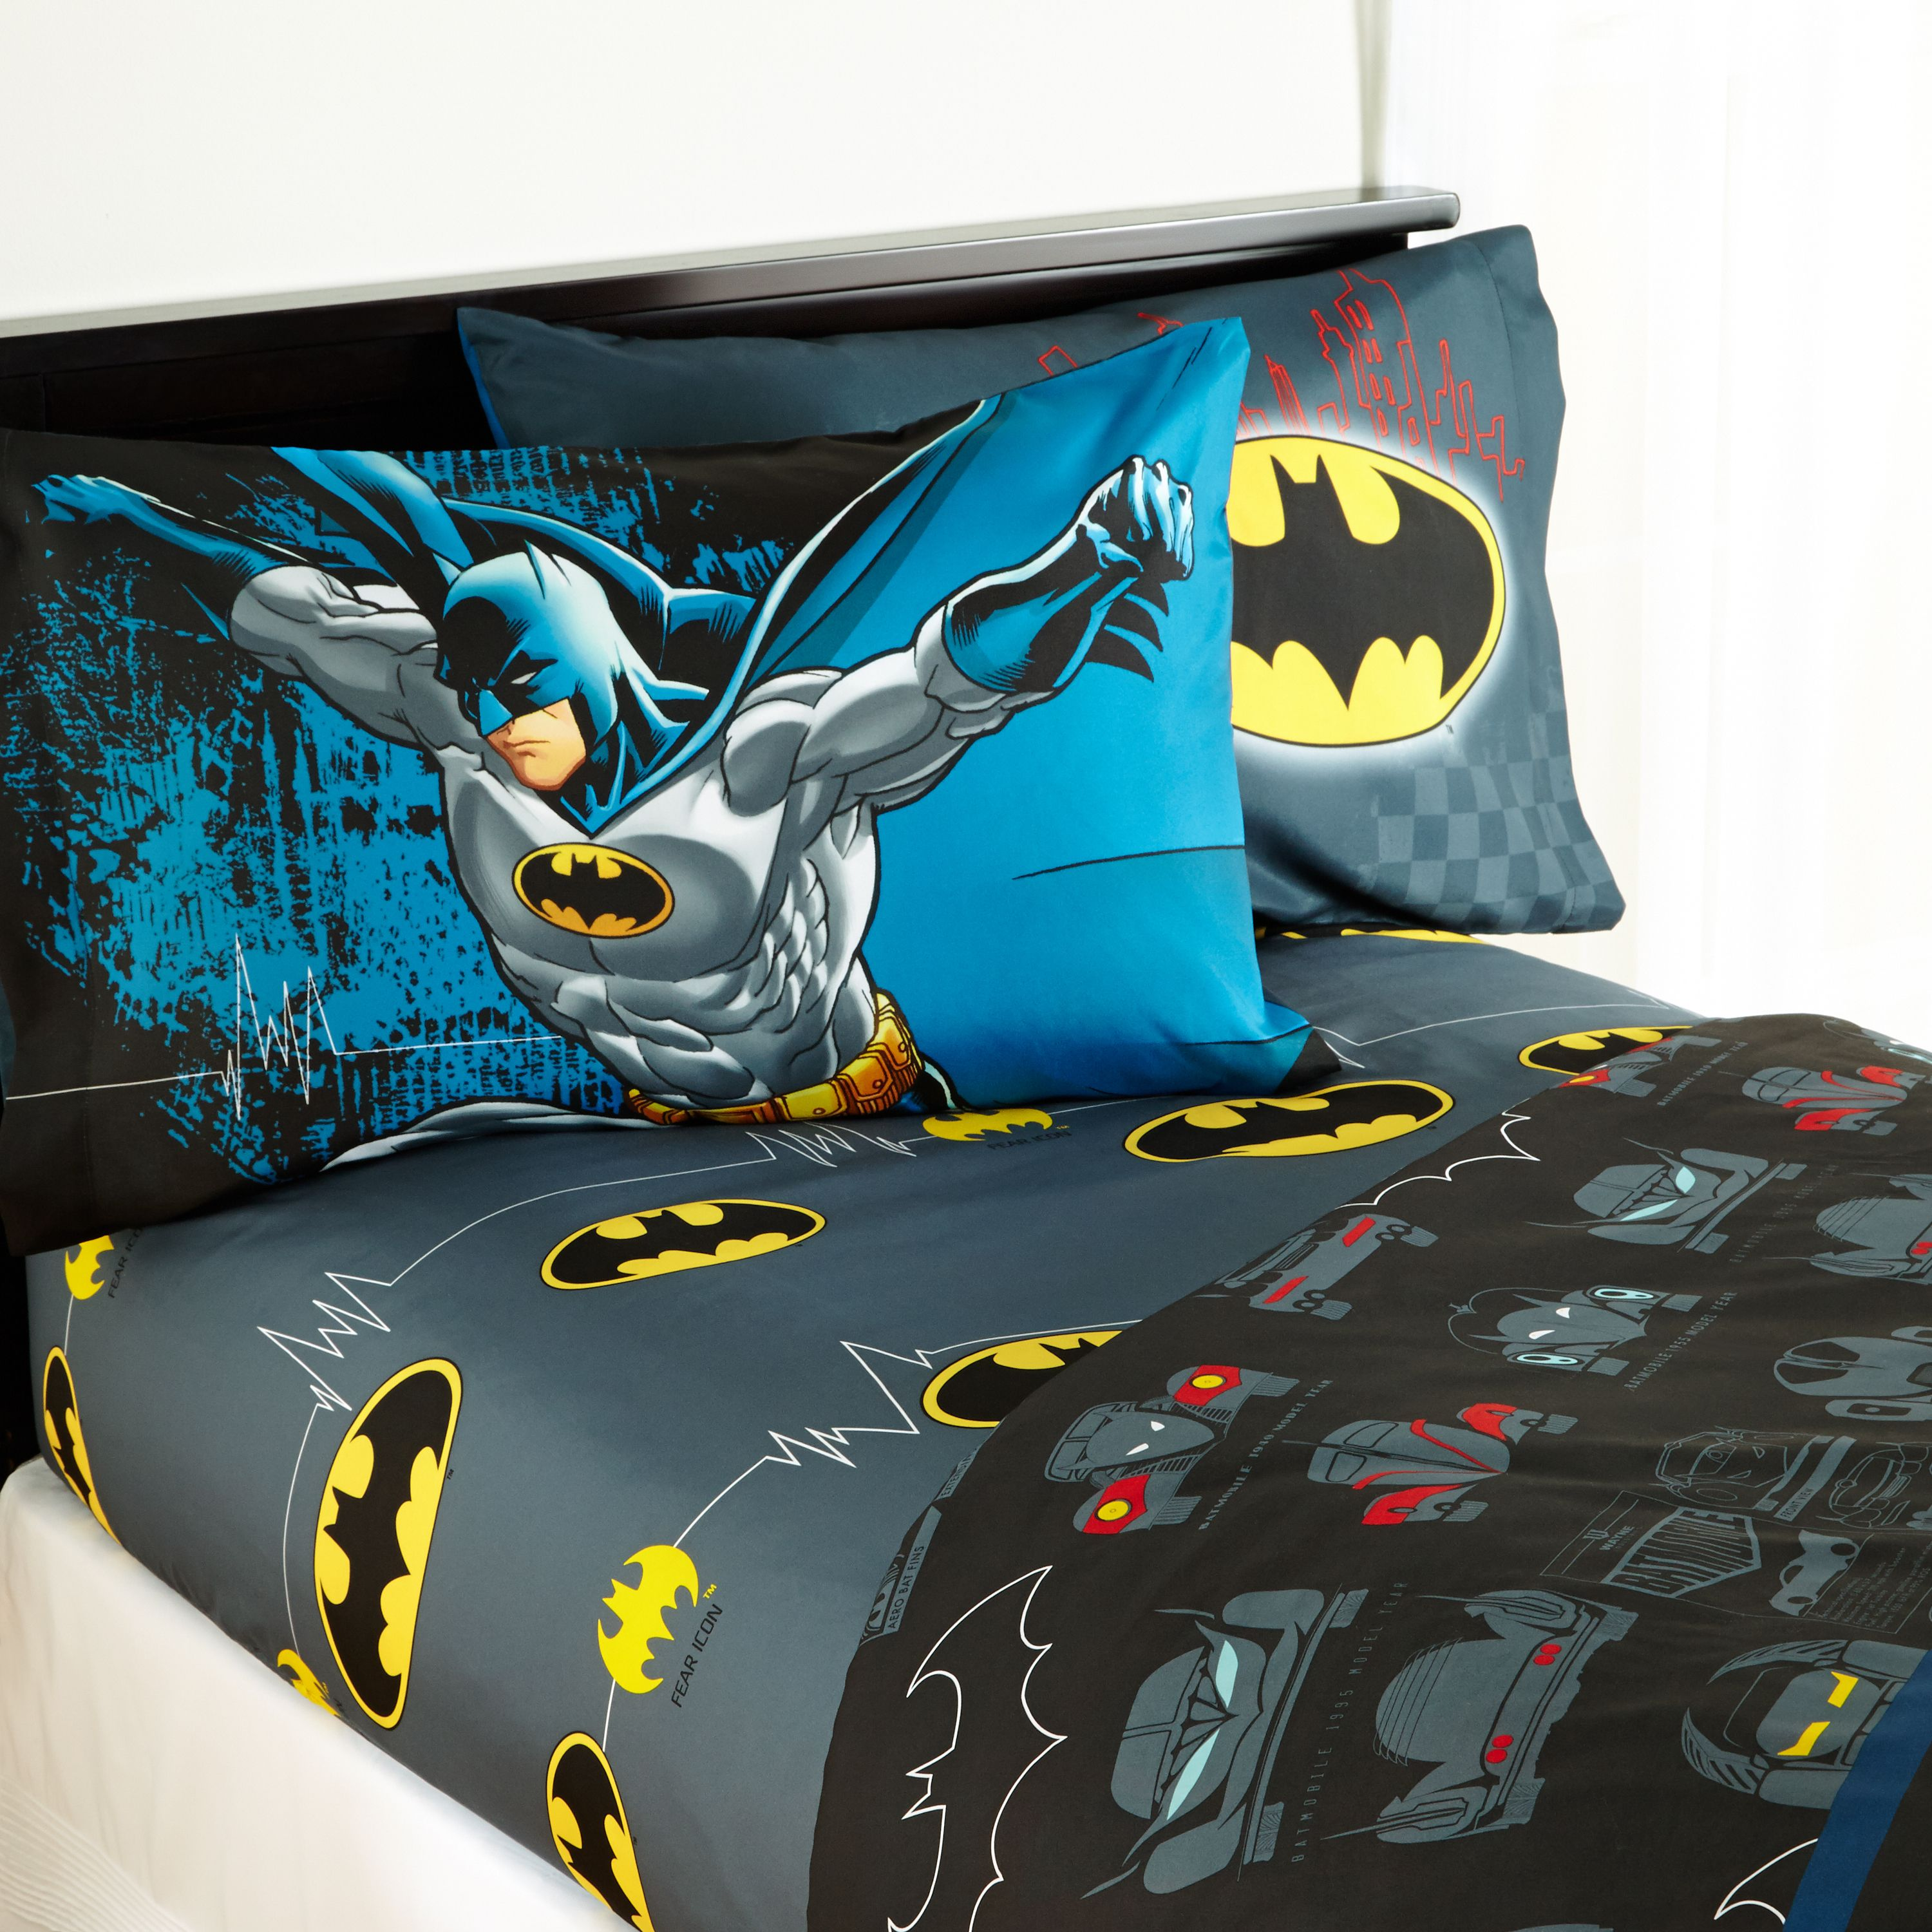 Warner Bros Full Batman 'Guardian Speed' Kids Sheet Set